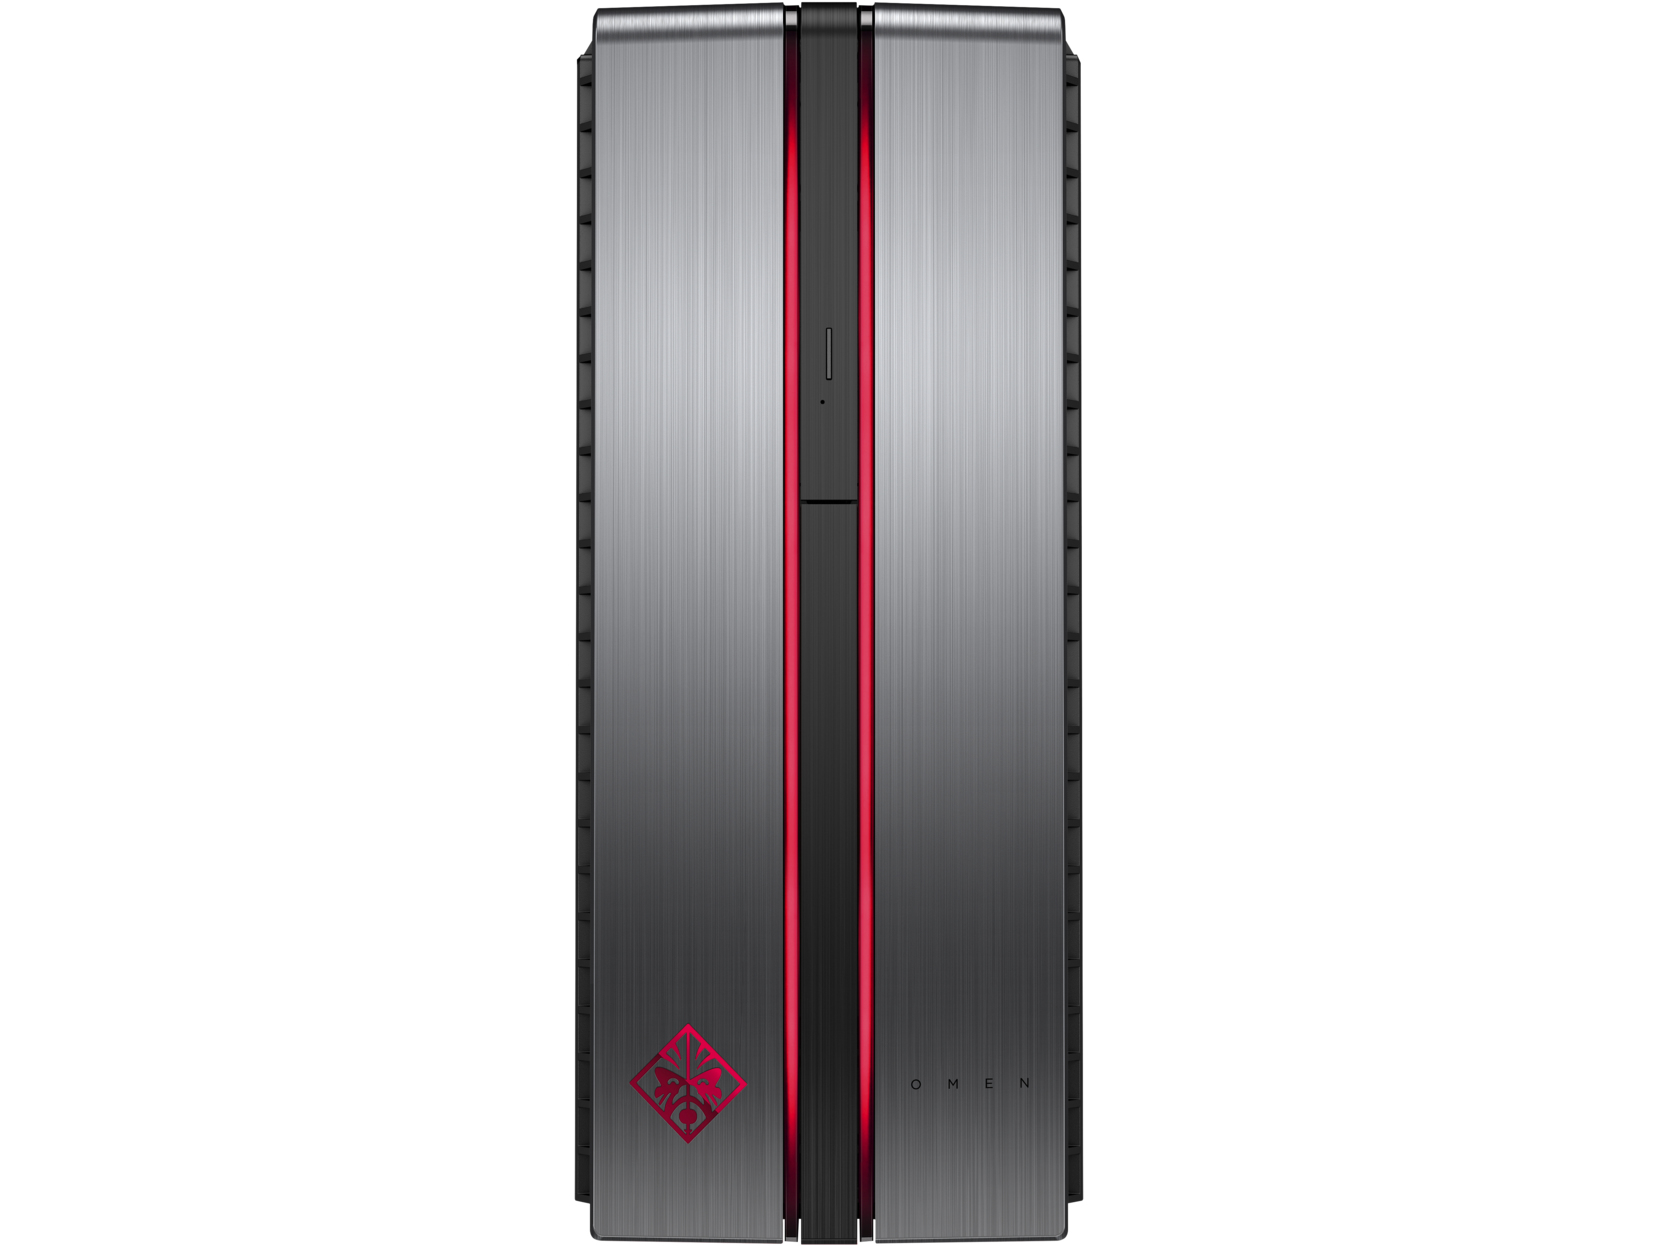 OMEN by HP 870-270na Tower - i5 7400 - 8GB RAM - 128GB SSD - 1TB HDD - Win10 Home